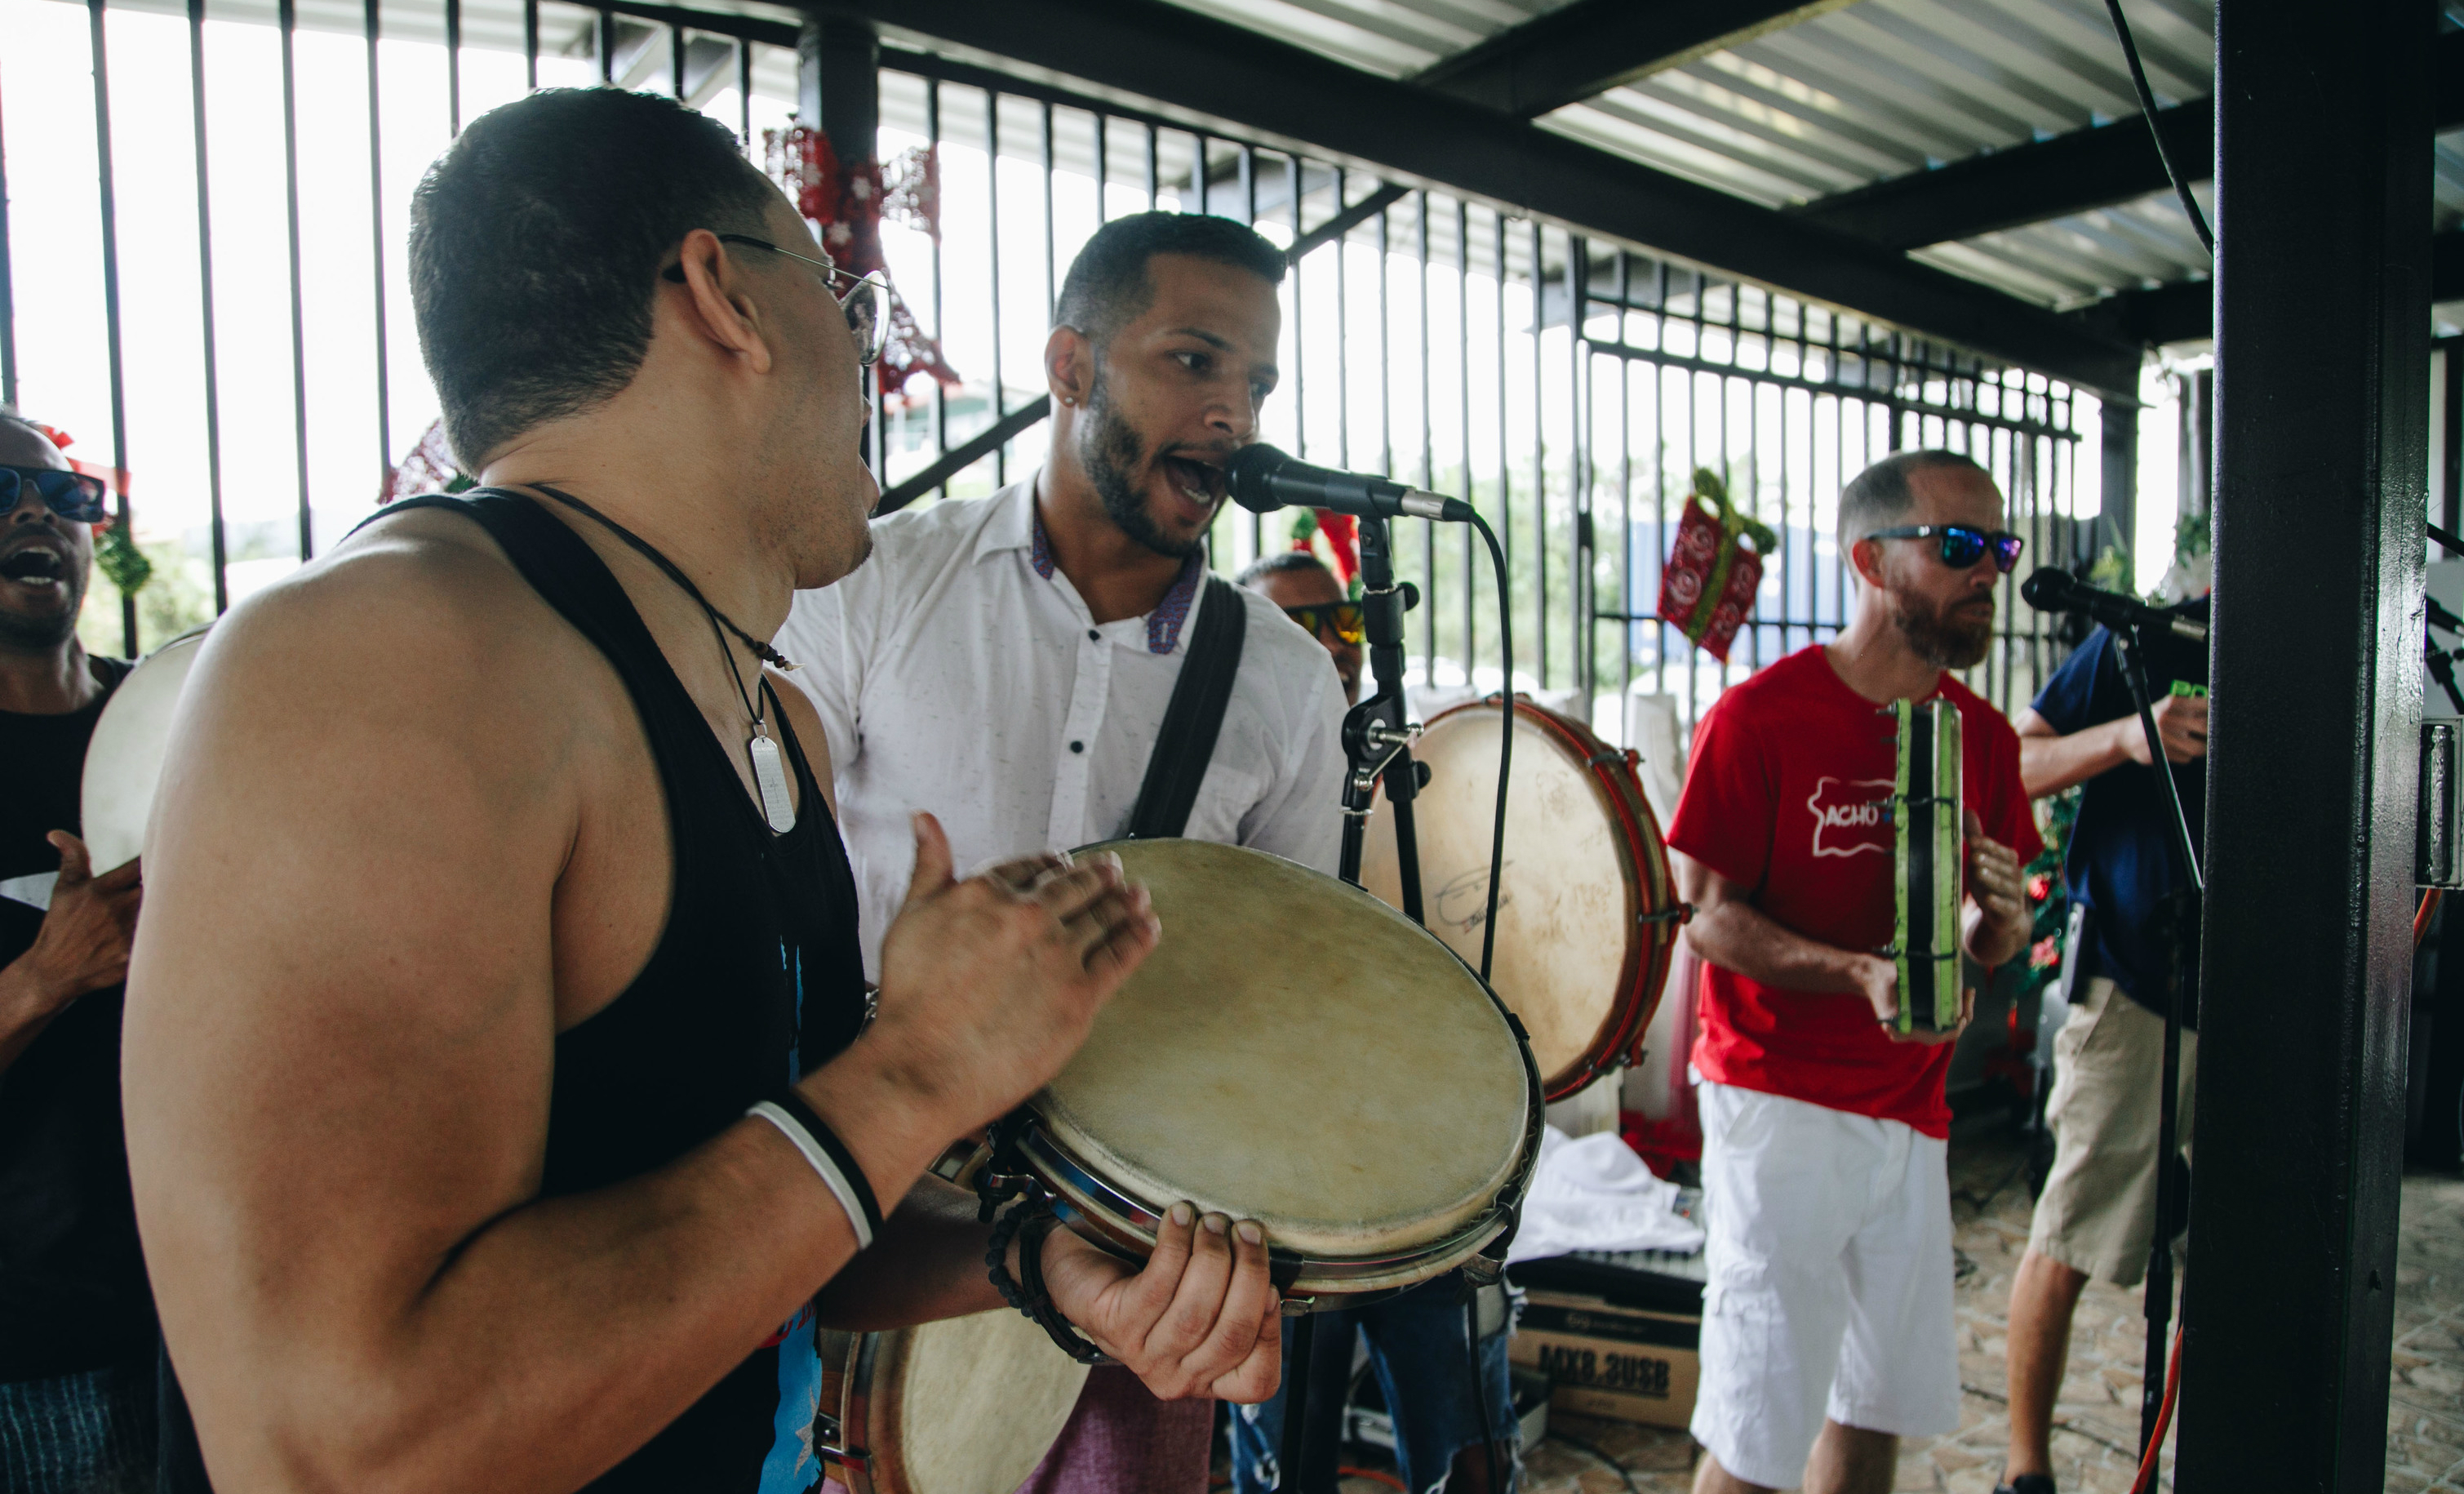 A three-person Puerto Rican band performs.